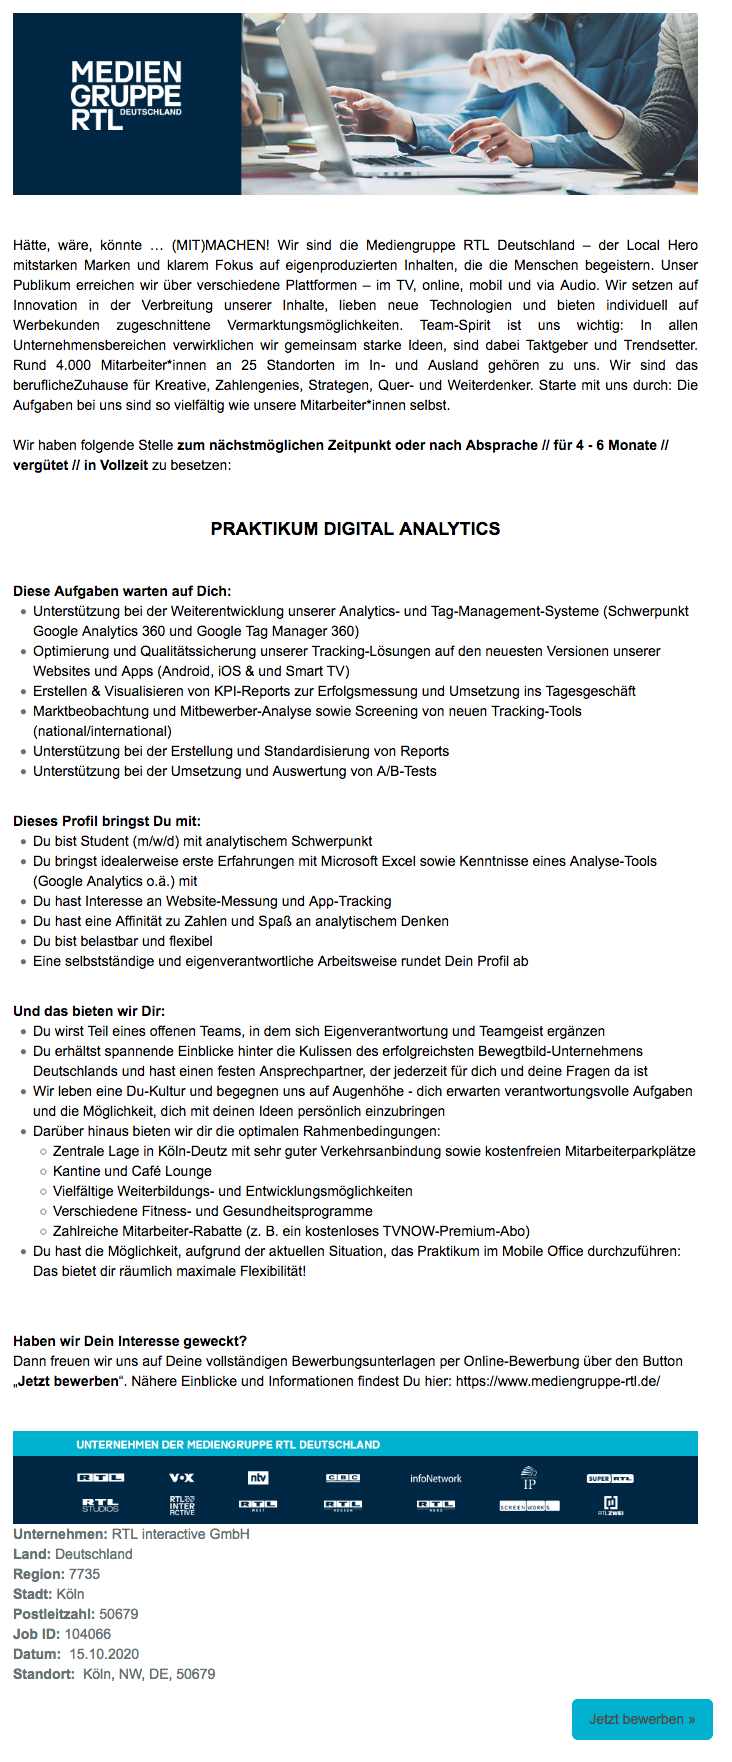 Praktikum Digital Analytics (RTL interactive)